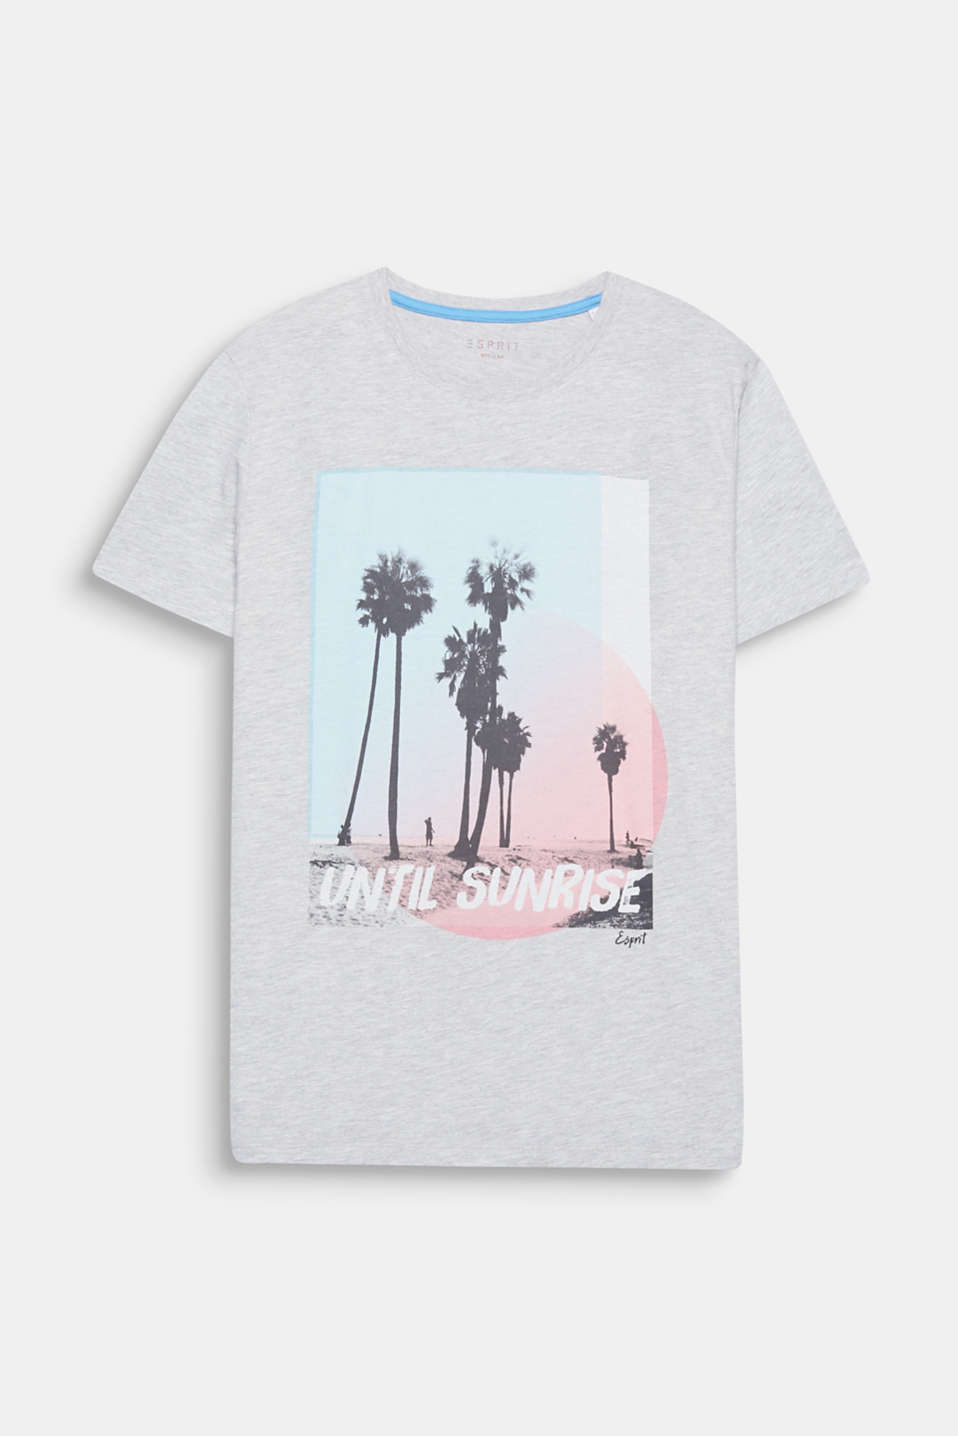 We're enjoying every minute of summer: until sunrise! One print, one statement: on this T-shirt made of a cotton blend.